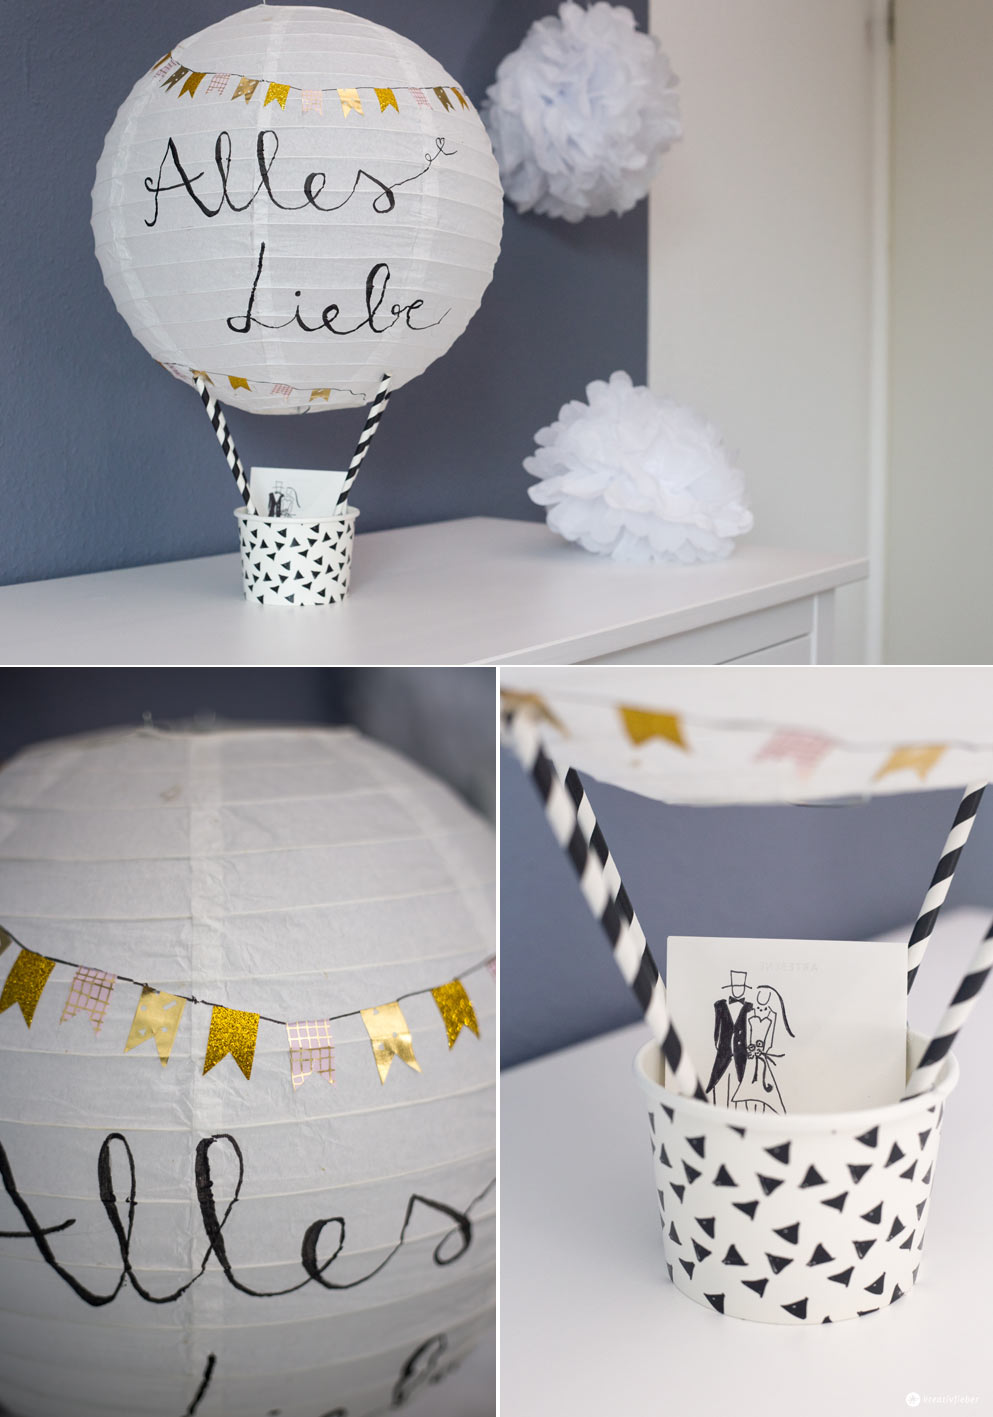 diy geschenkidee zur hochzeit hei luftballon geldgeschenk basteln diy. Black Bedroom Furniture Sets. Home Design Ideas